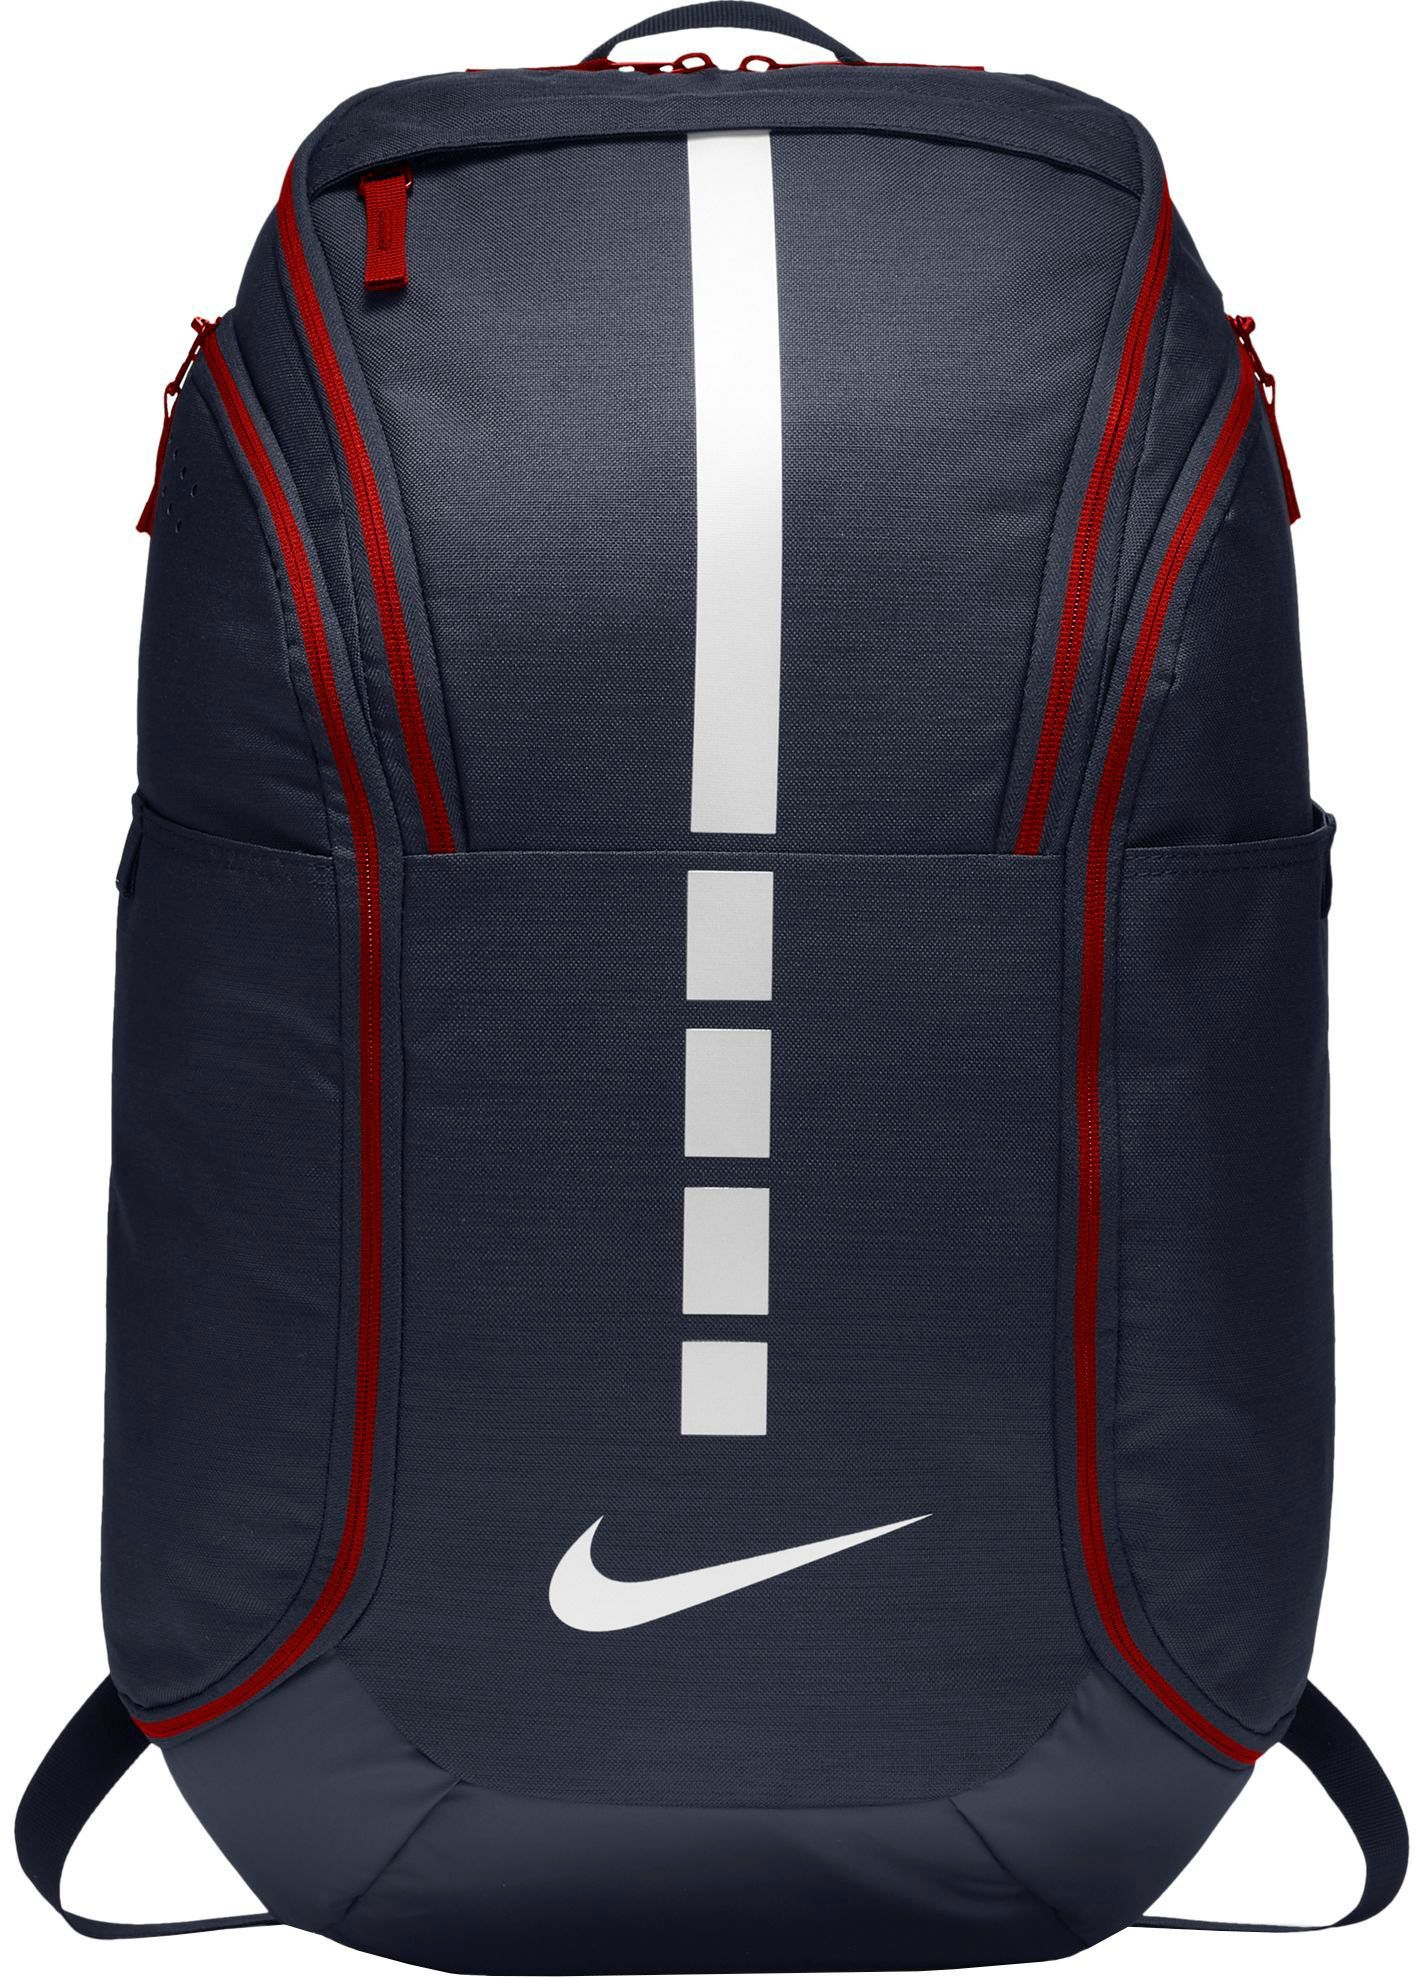 free shipping 9f008 ca9a3 Nike Hoops Elite Pro Basketball Backpack